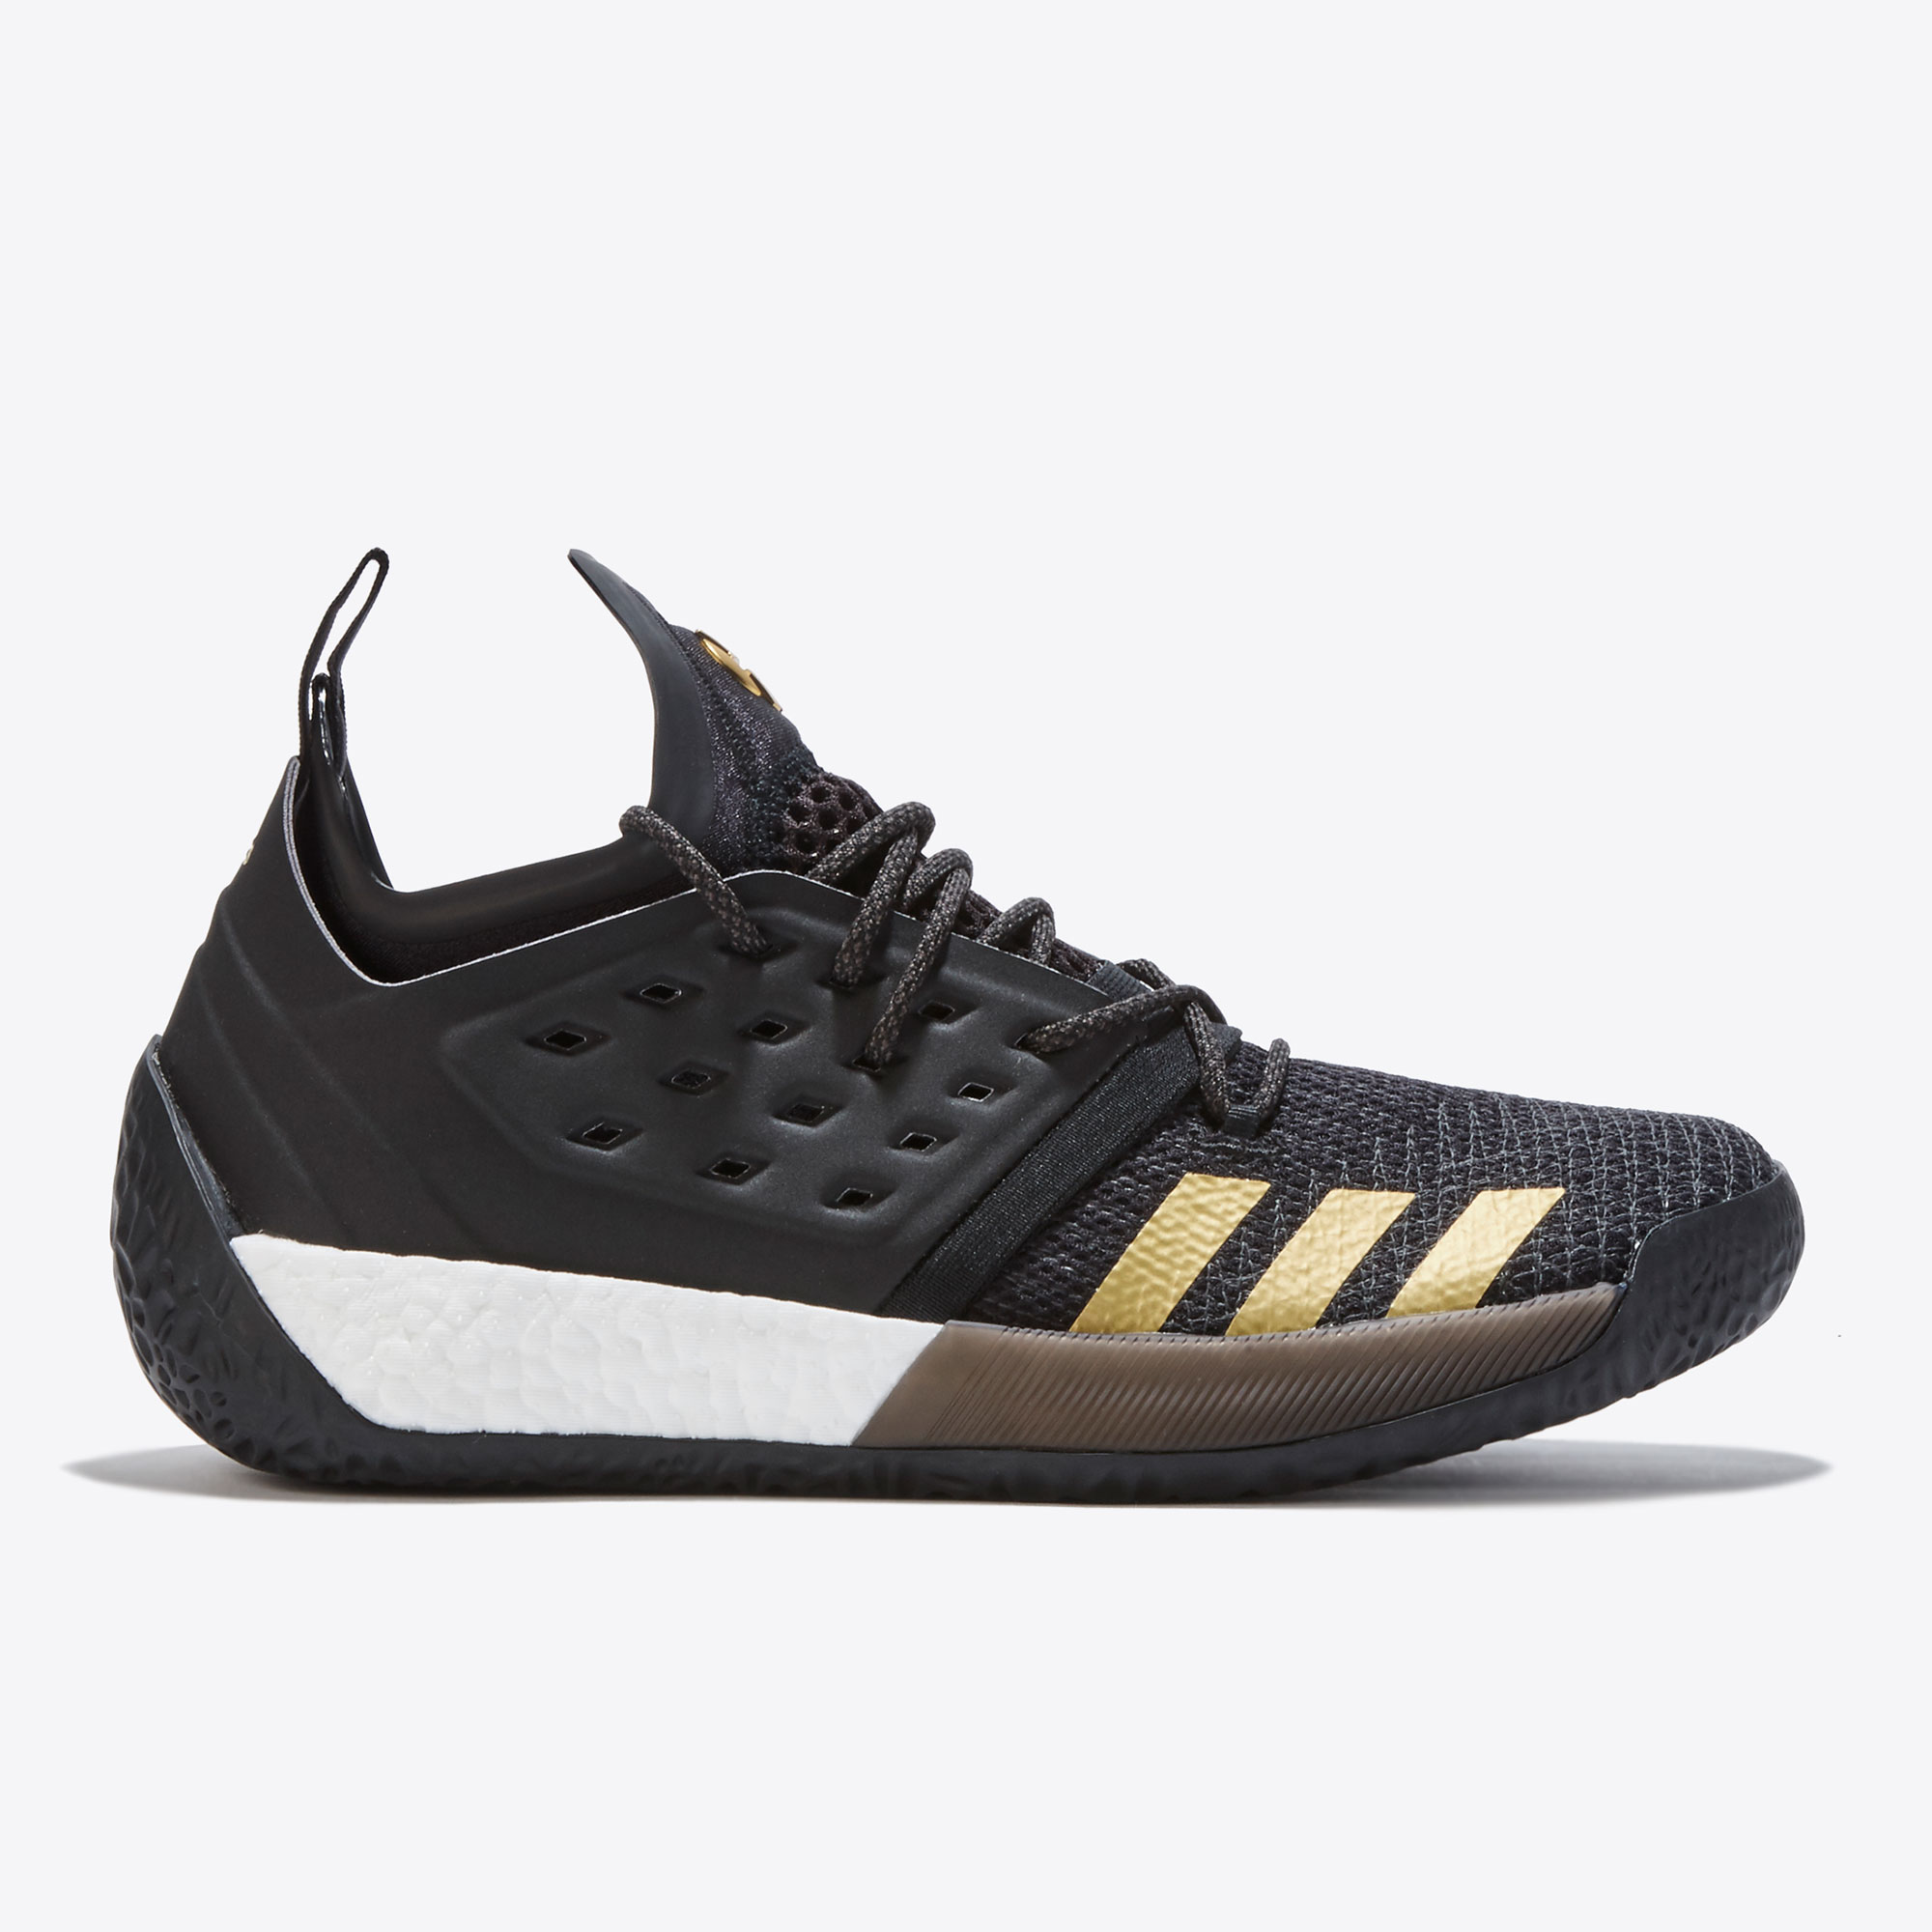 "Image of ""adidas Harden Vol.2 Basketball Shoe - Players Champ"""